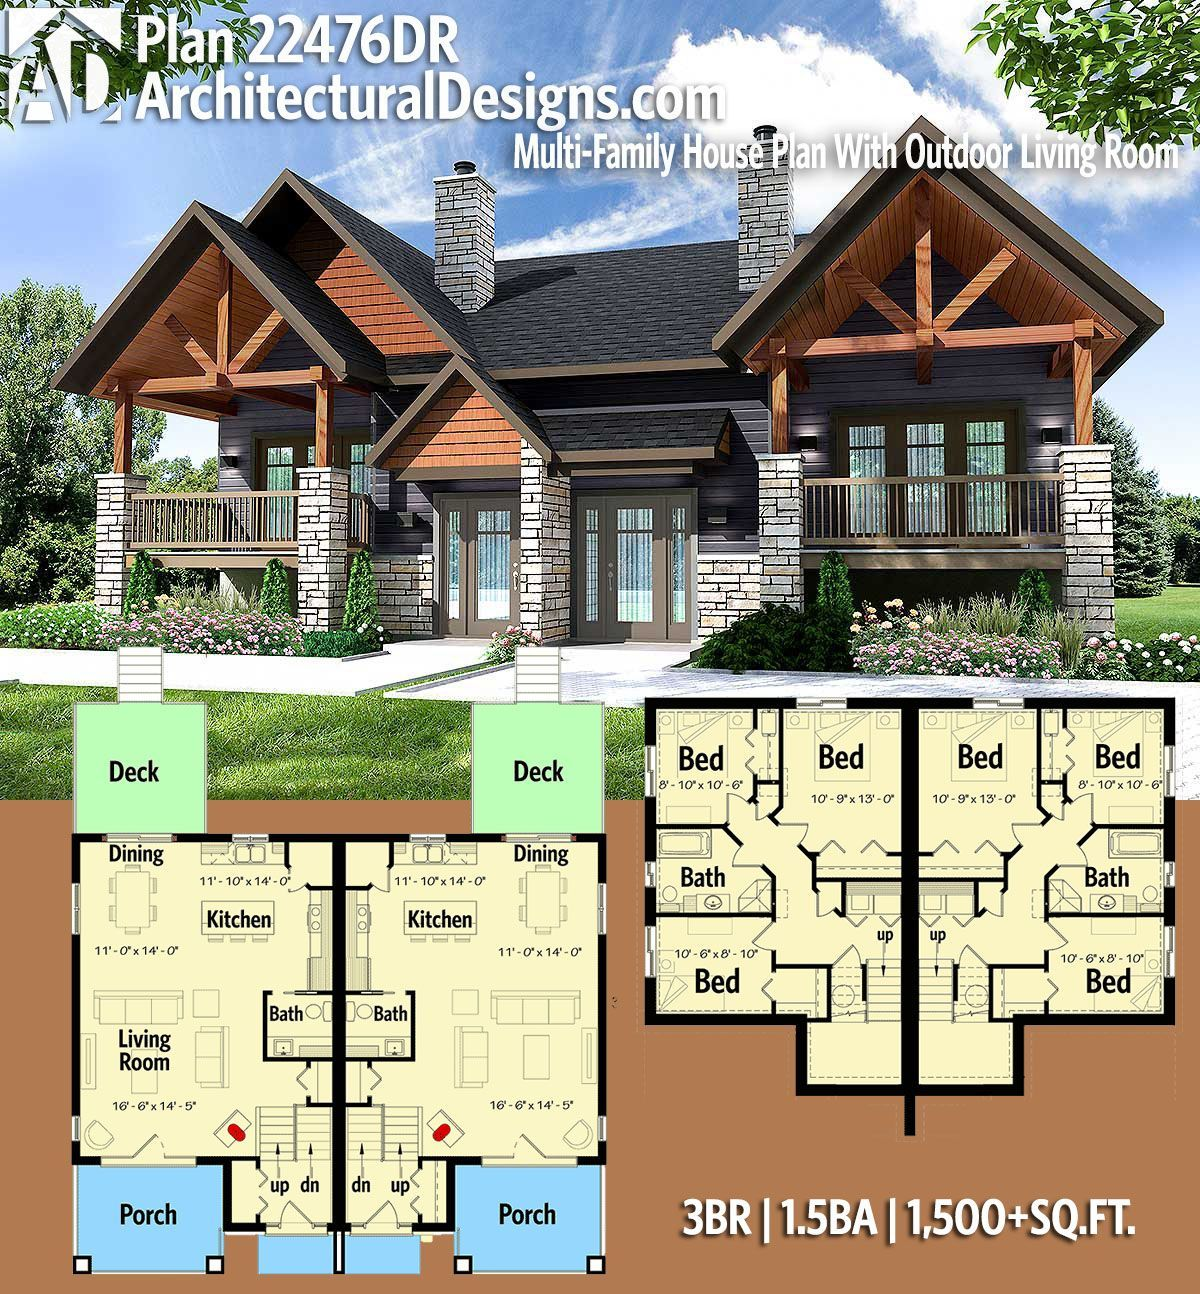 House Plans With Outdoor Living Taken